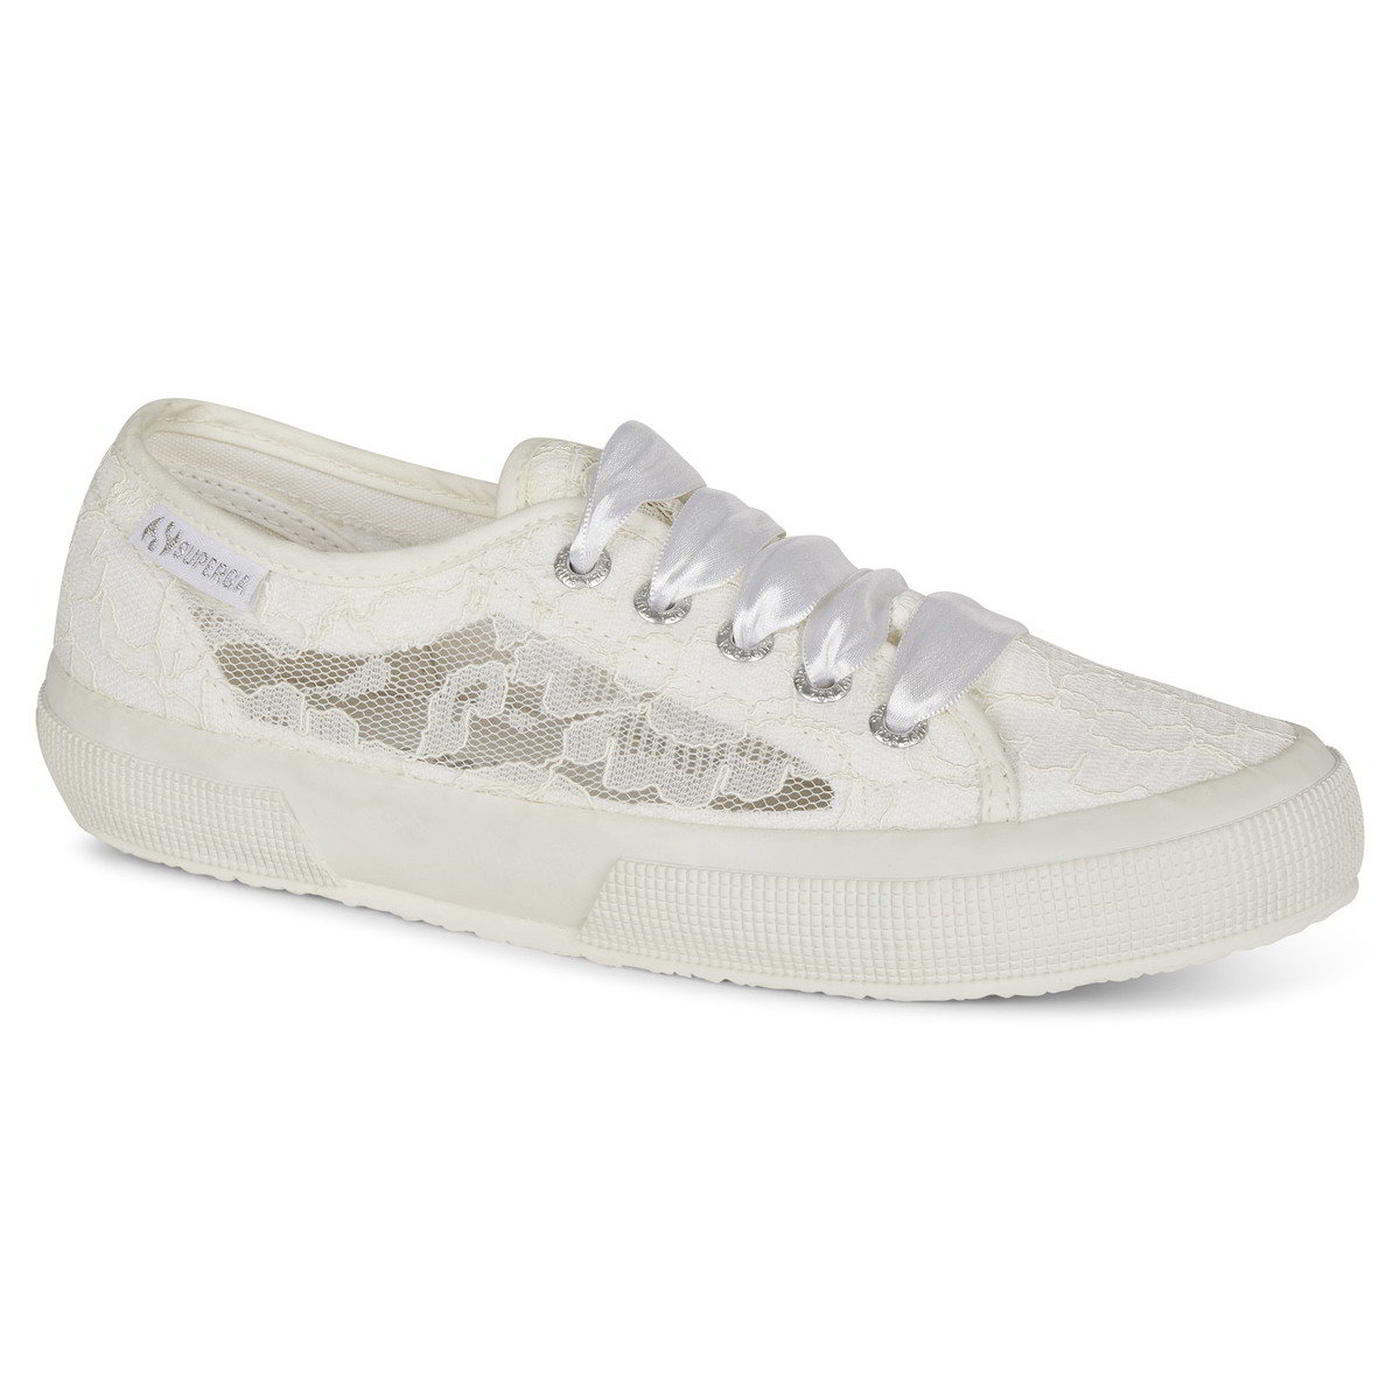 Superga Womens 2750 New Lace Trainers Shoes - White